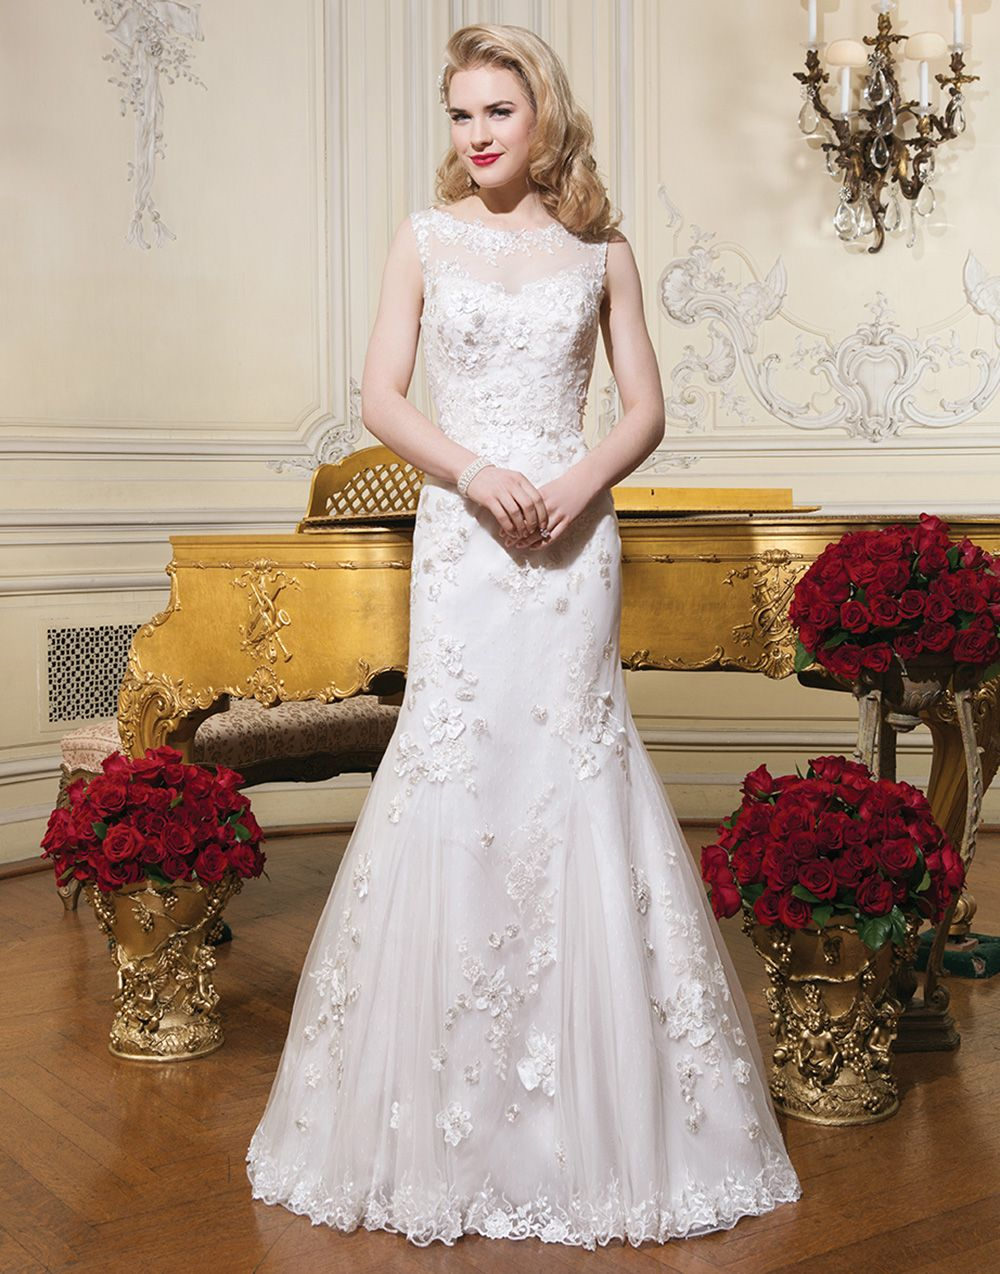 Justin alexander wedding dresses  Justin Alexander wedding dresses style  Embroidered lace fit and